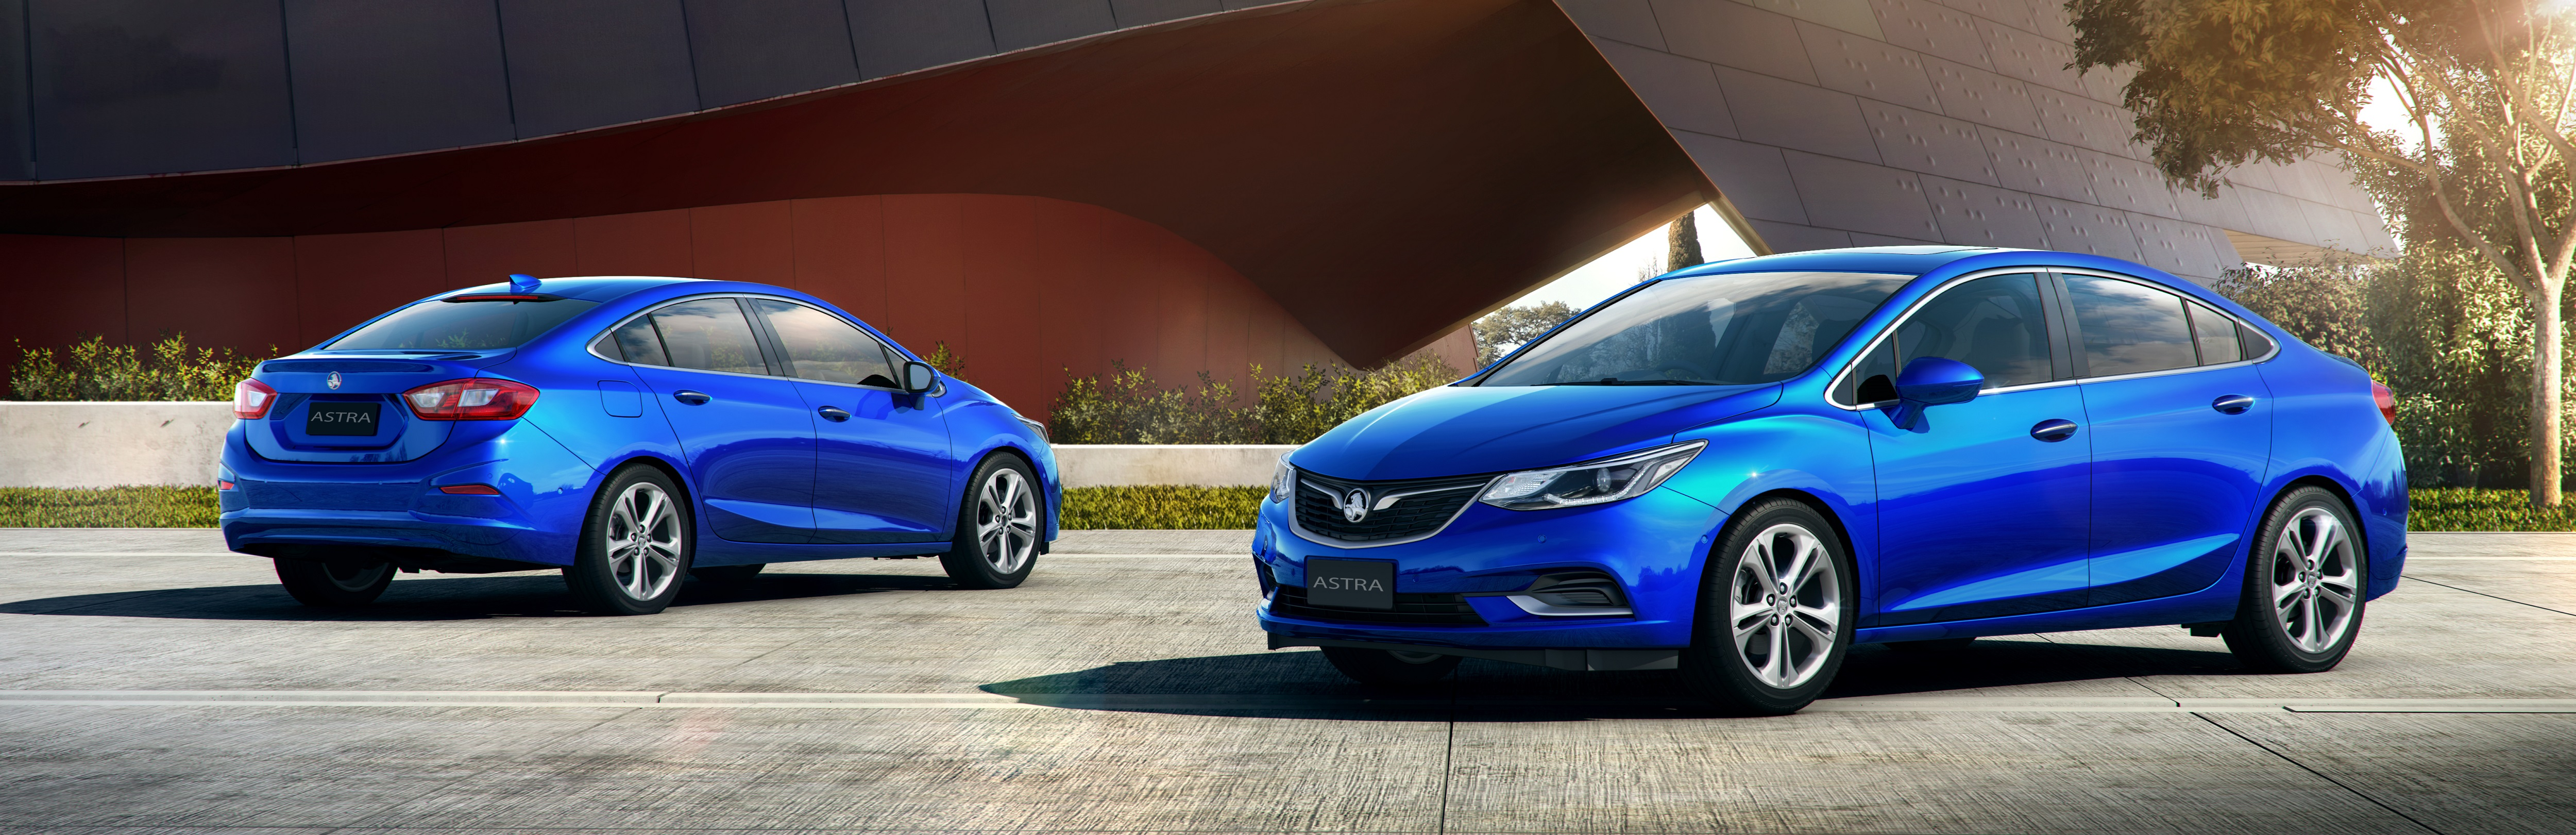 New Holden Astra Sedan Is No Opel In Drag But A Chevrolet Cruze